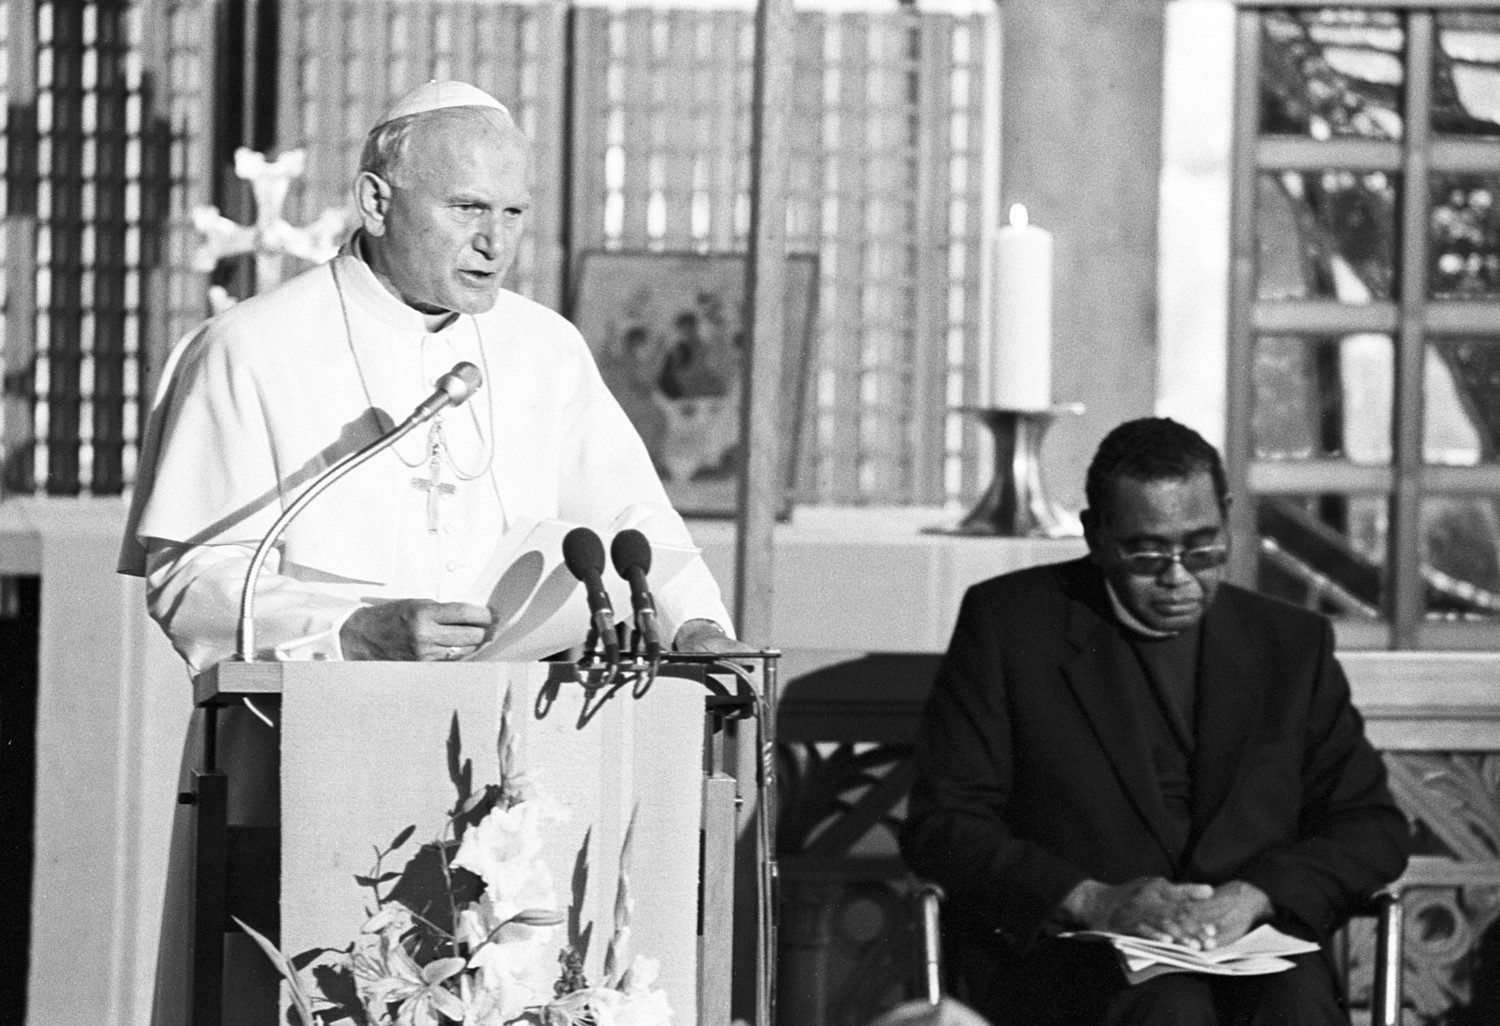 Pope St. John Paul II speaks during a visit to the World Council of Churches in Geneva June 12, 1984. Also pictured is the Rev. Philip Potter, general secretary of the WCC. Pope Francis is scheduled to attend an ecumenical prayer service and meeting at the WCC during a one-day visit to Geneva June 21.